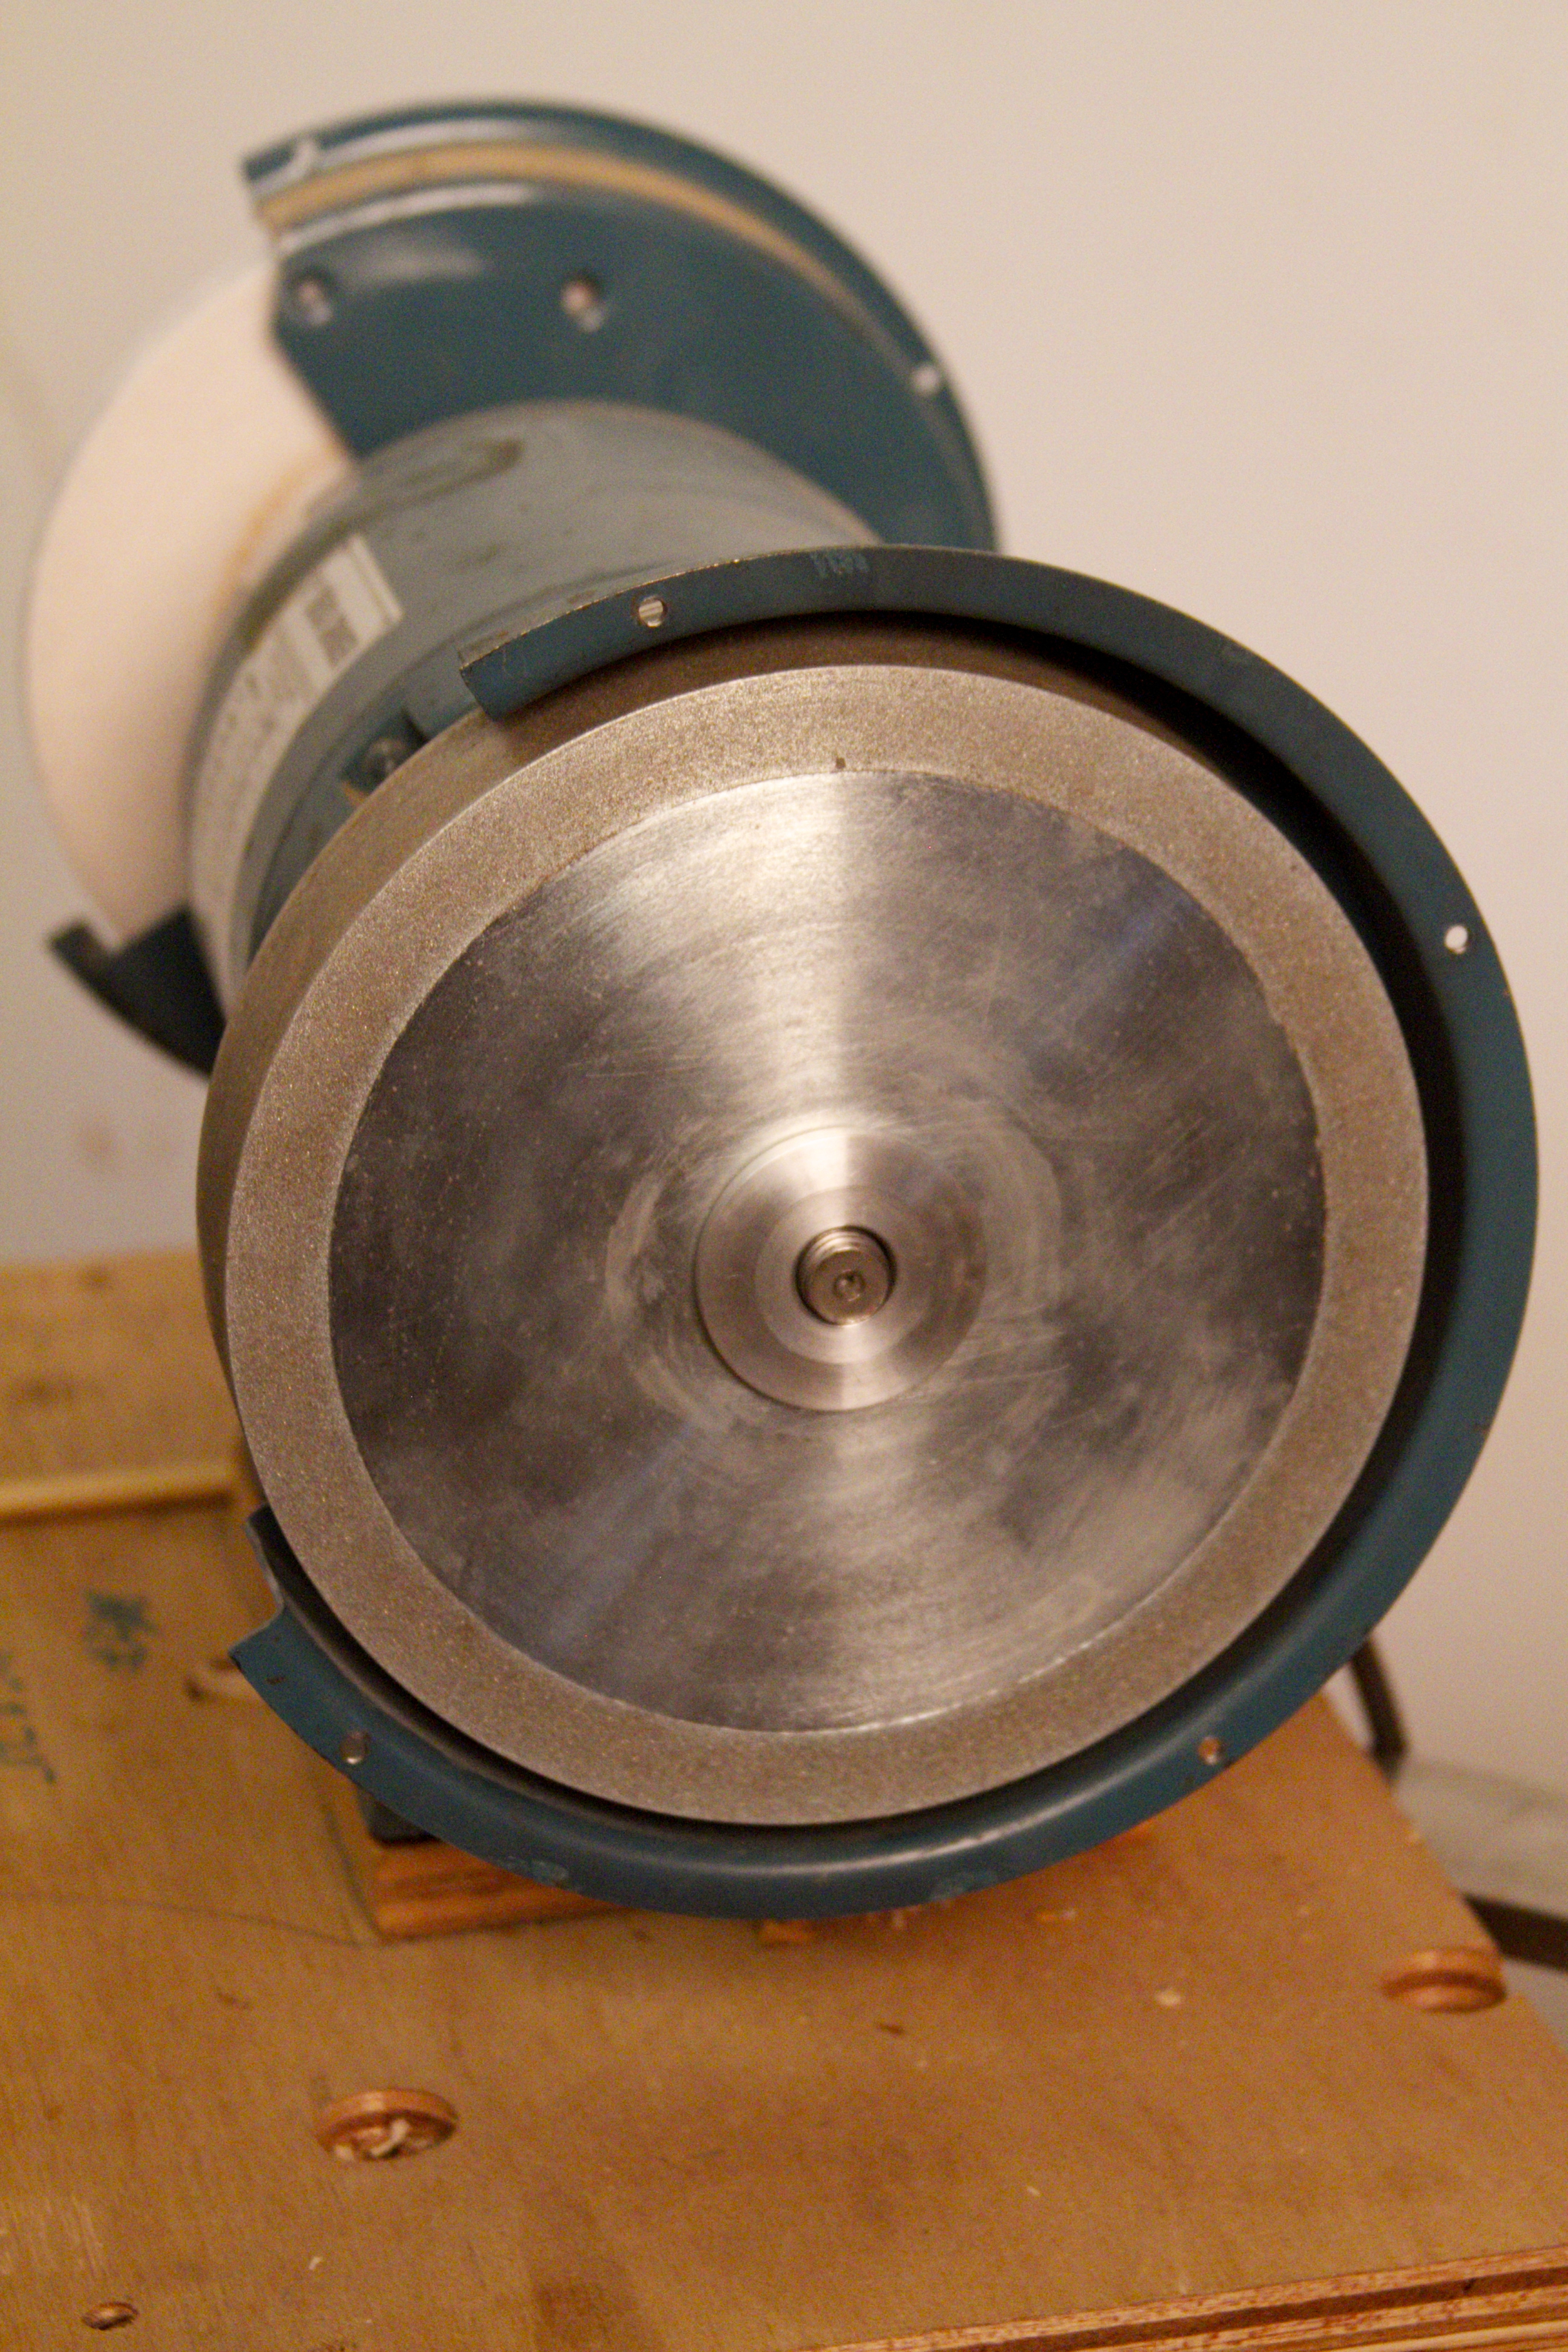 1 1/2 inch wide Optigrind, mounted with side grind to the outside. Notice there is not much  shaft left to thread a nut onto